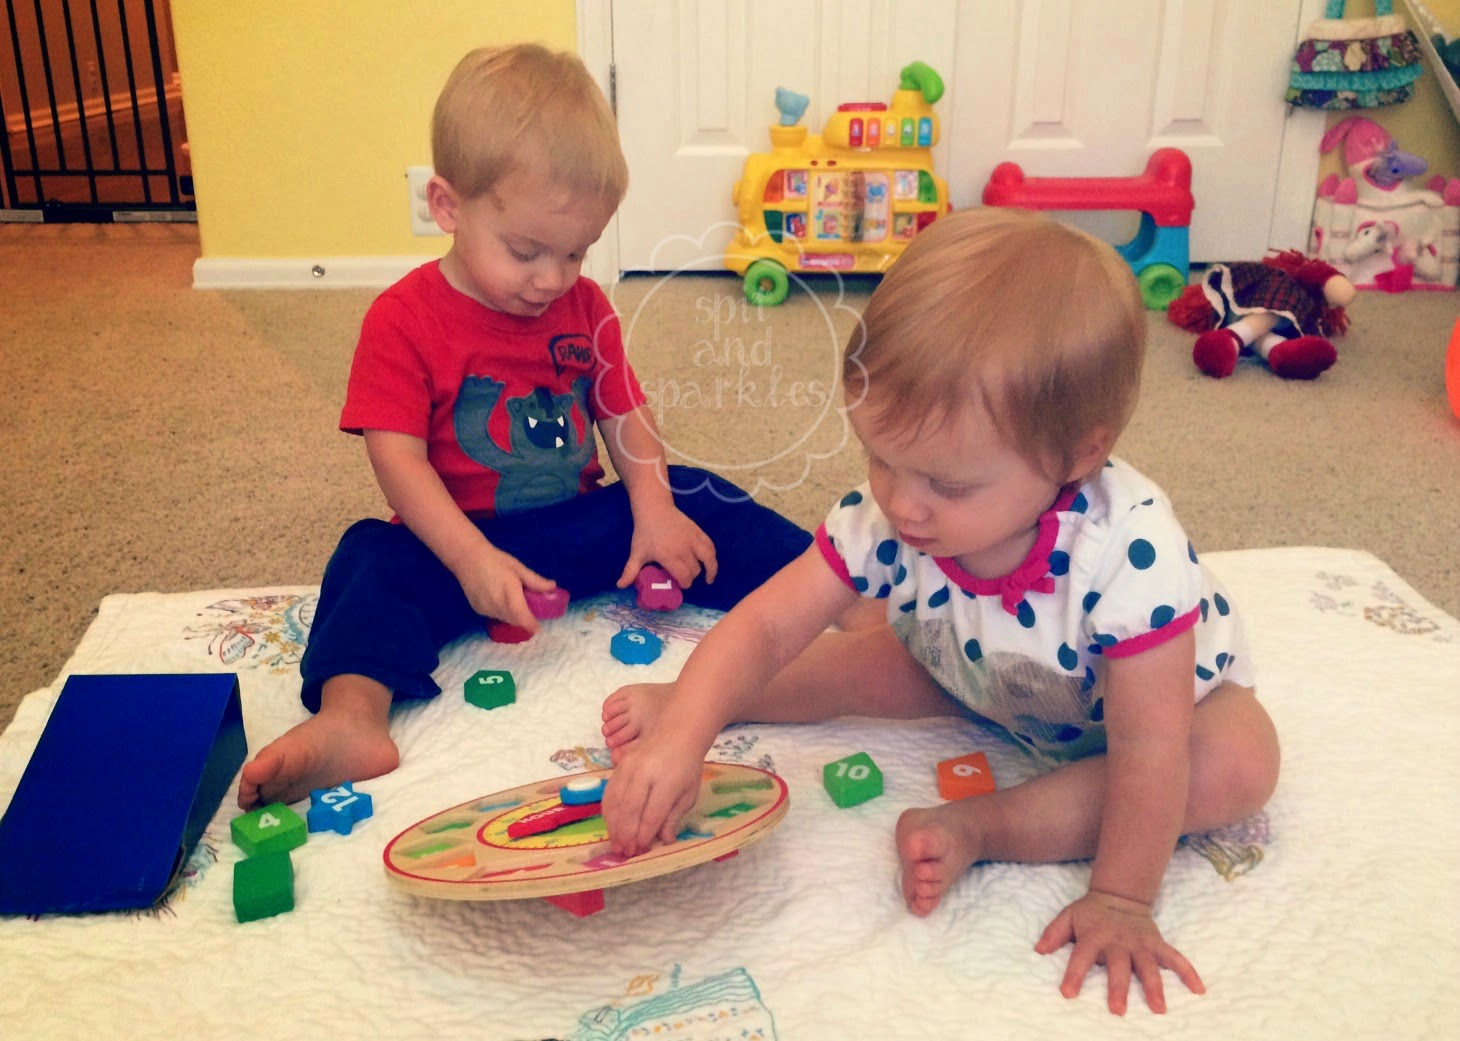 Early learning made easy with Ebeanstalk. #sponsored #earlylearning #totschool #homeschool